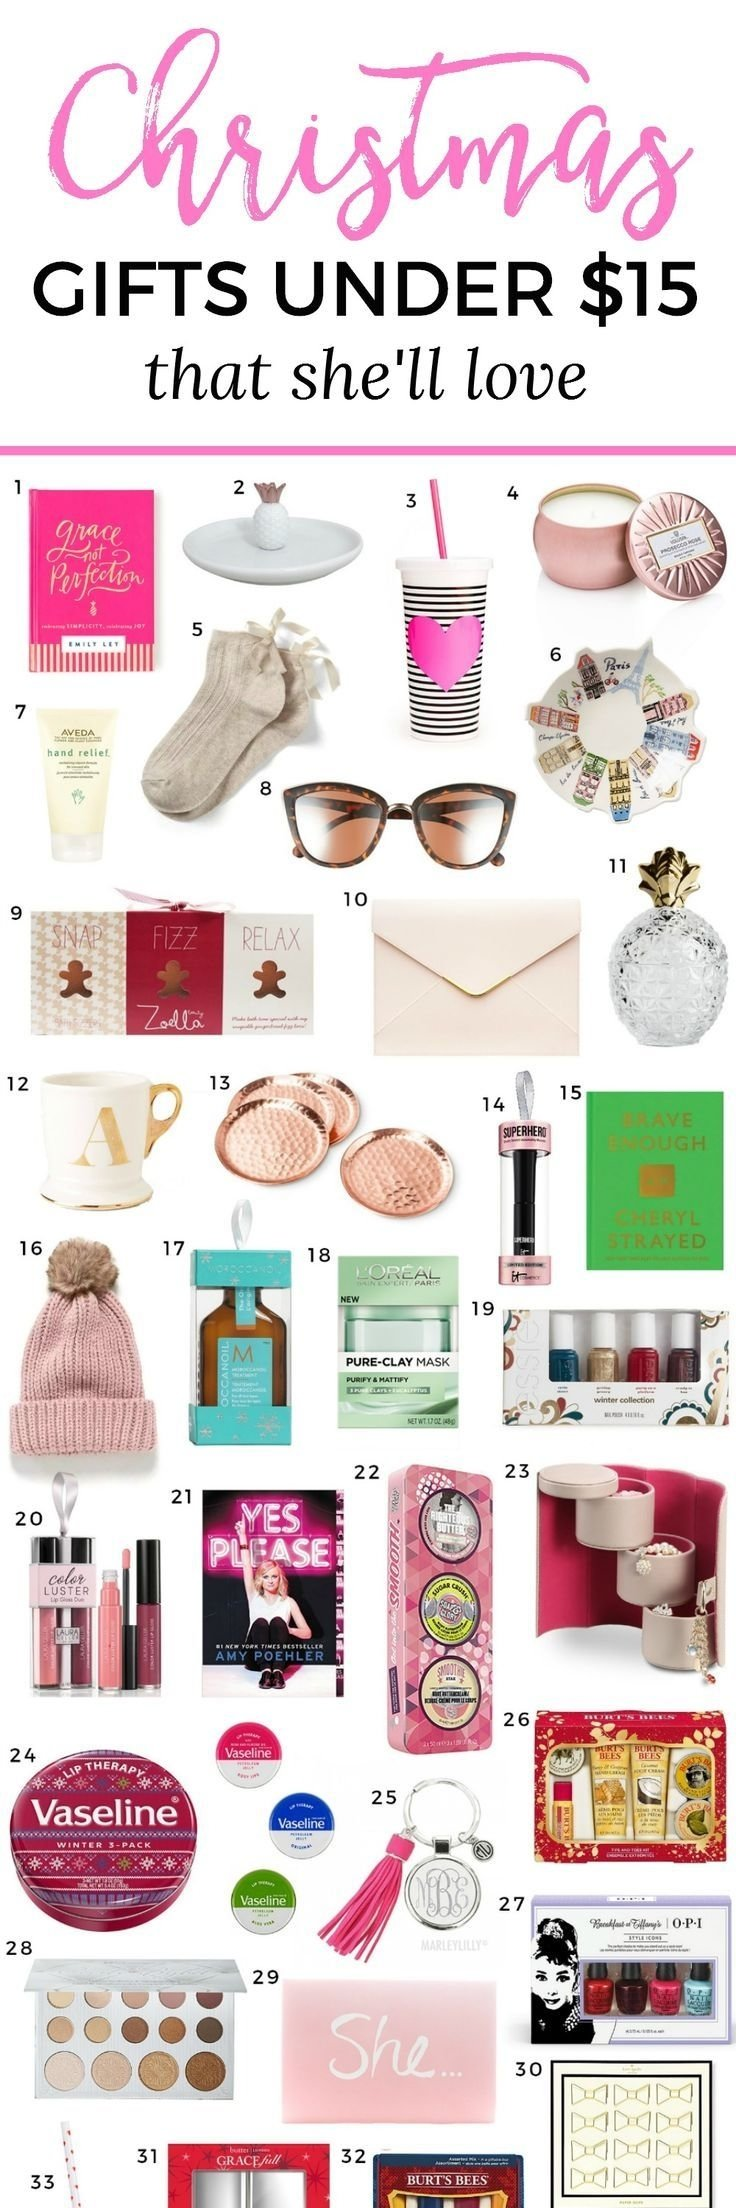 10 Awesome Good Ideas For Christmas Gifts 277 best gifts to give images on pinterest gift ideas creative 2020